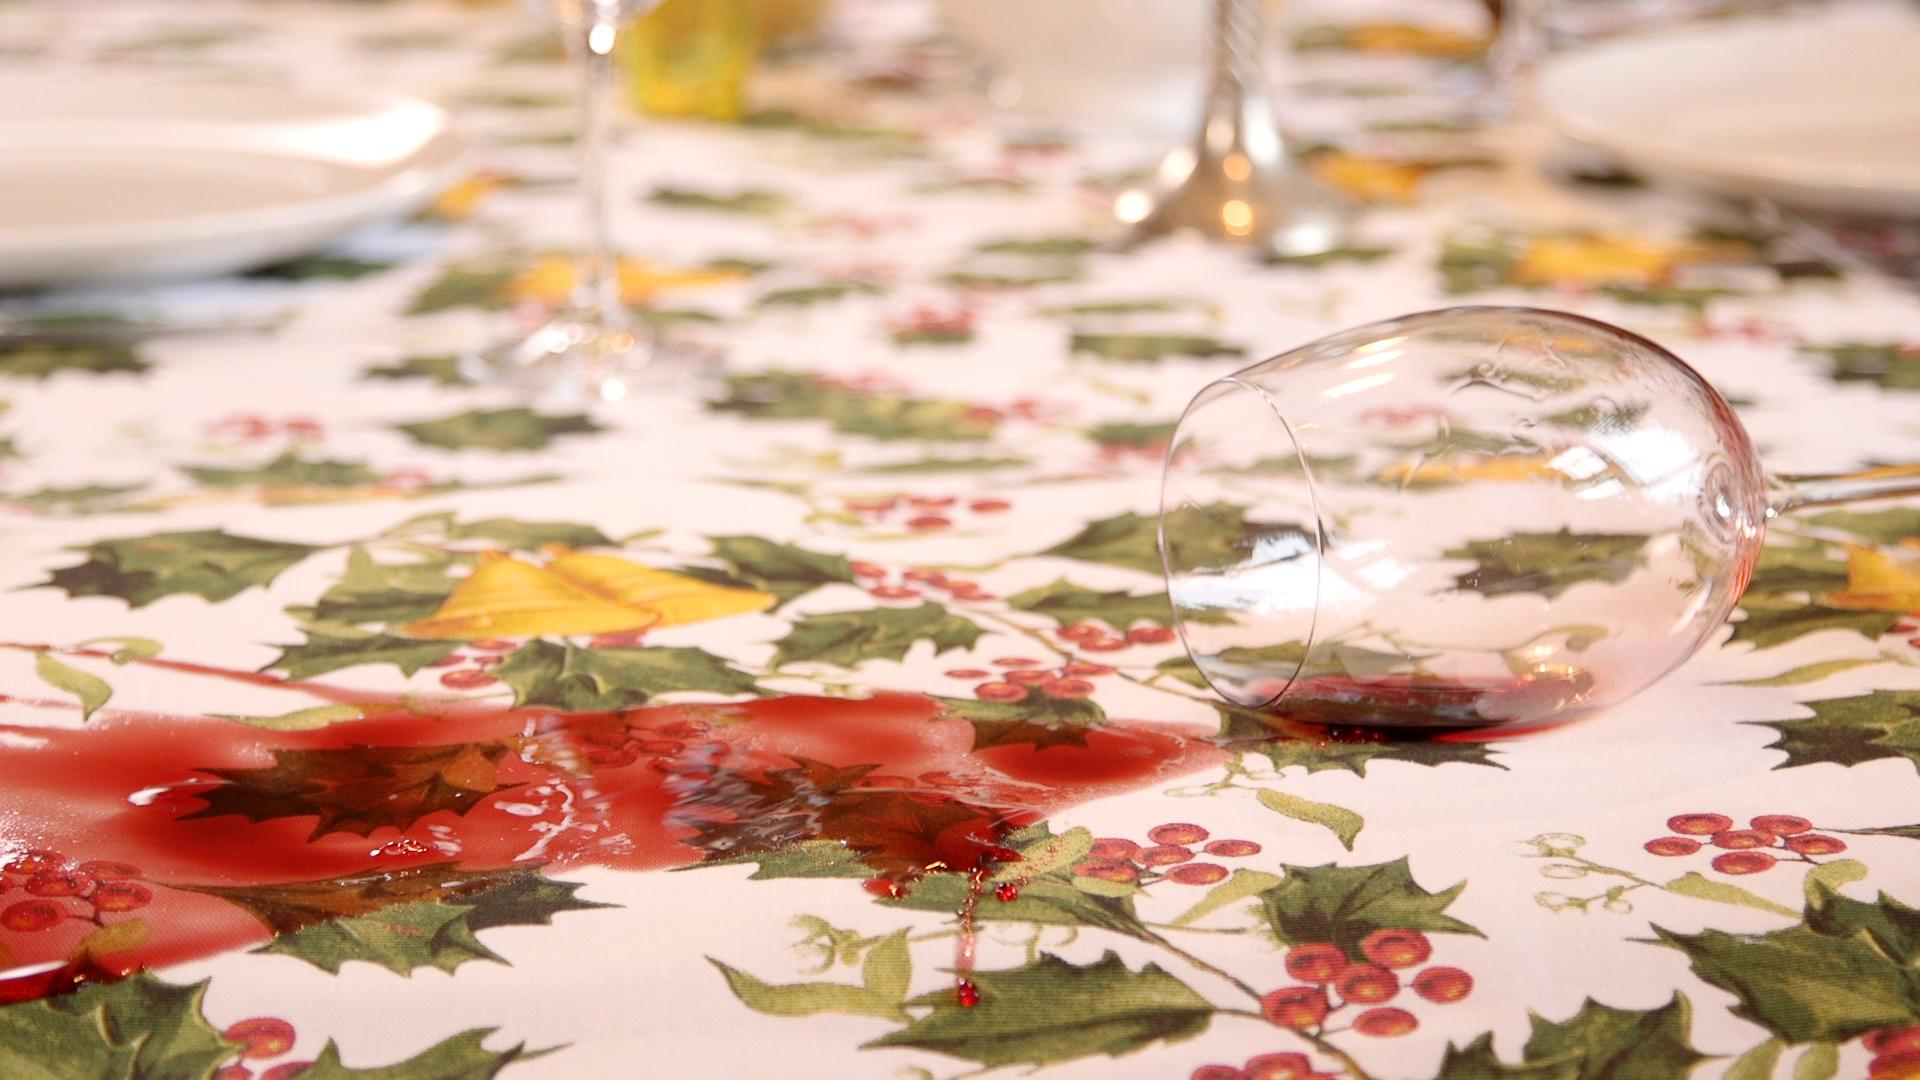 How to Clean Up Red Wine Stains and Other Messes Consumer Reports